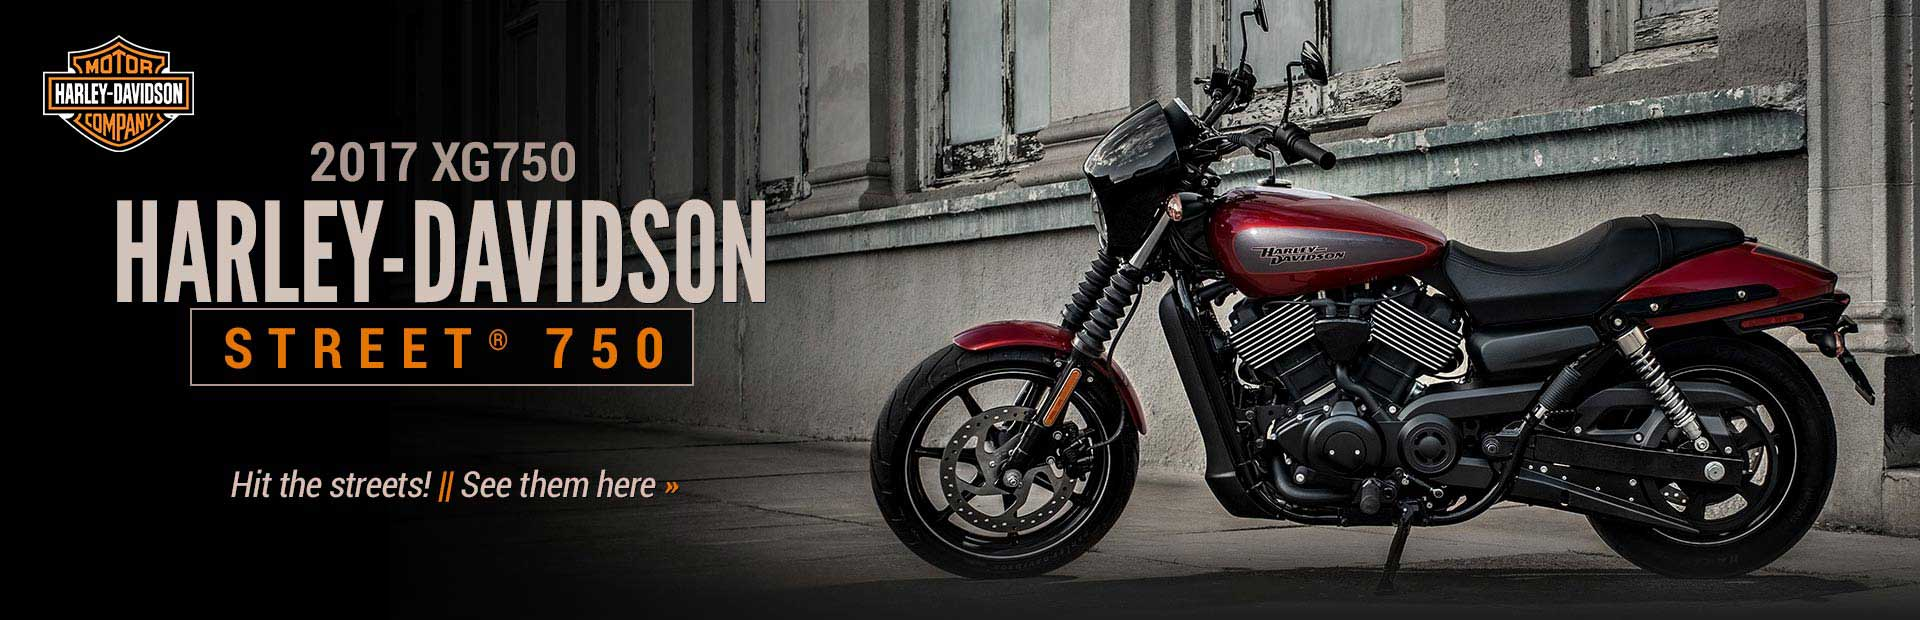 2017 XG750 Harley-Davidson Street® 750: Click here to view the model.